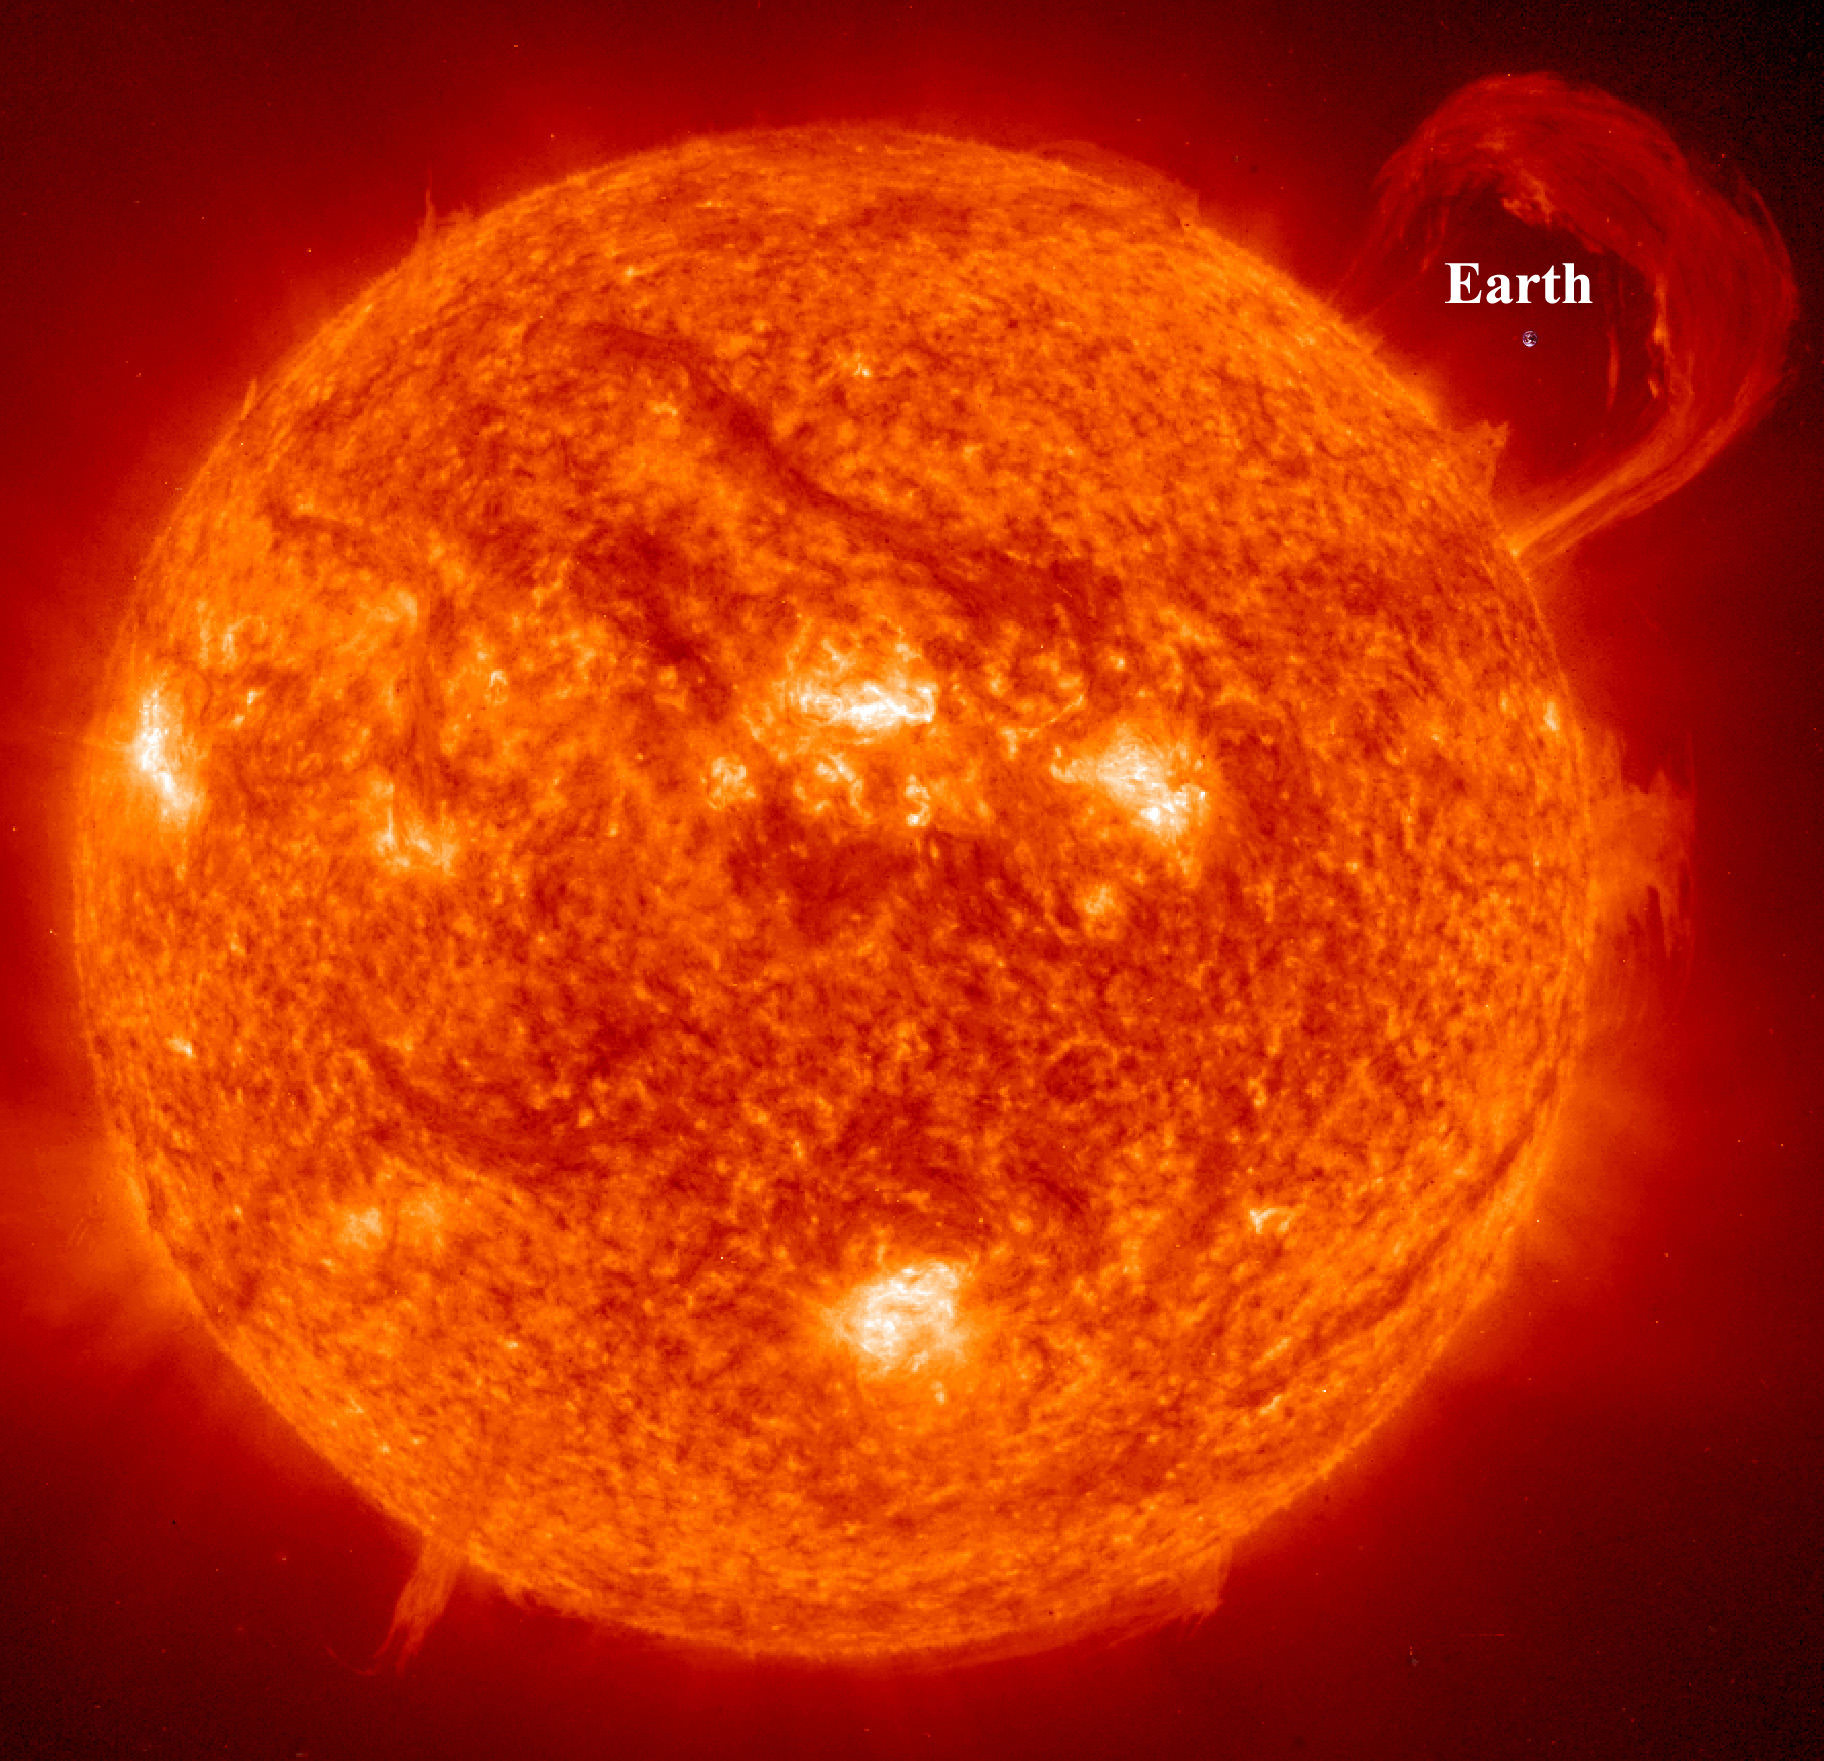 How Many Earths Can Fit In The Sun